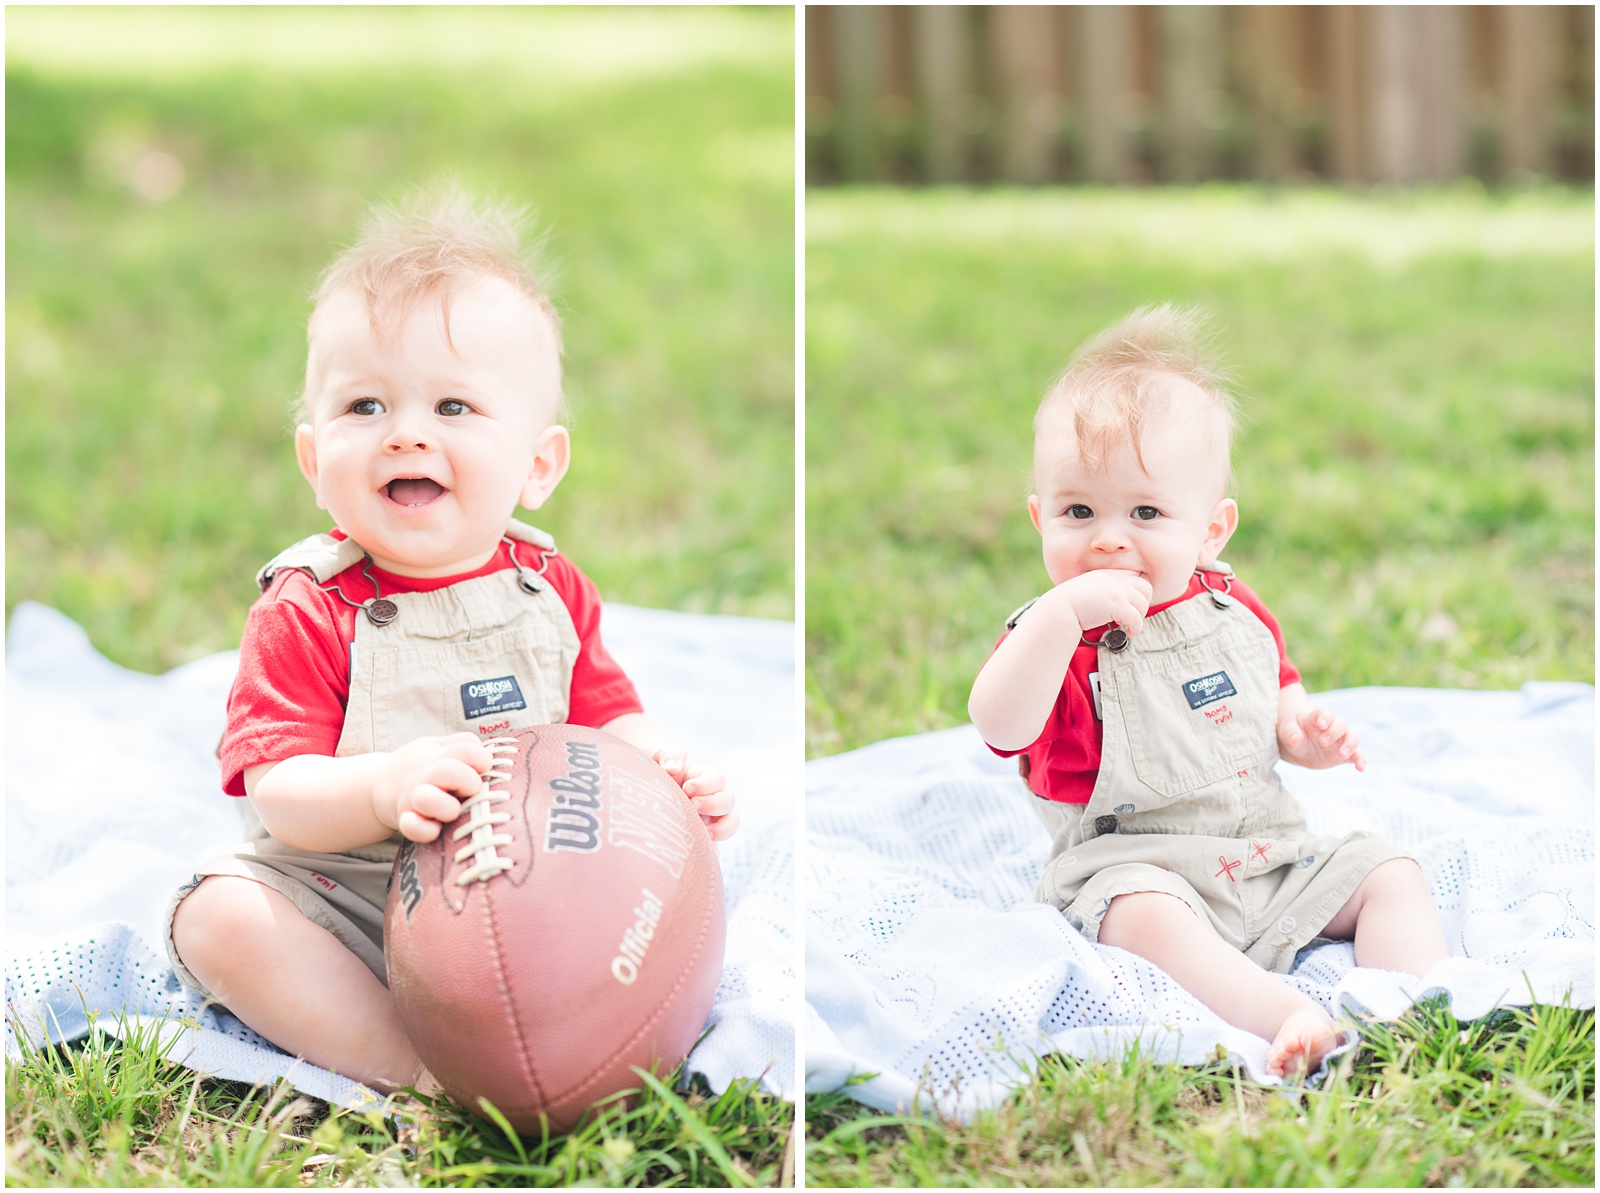 Baby_Portraits_9 Months_Family_Siblings_Growing Up_4.jpg